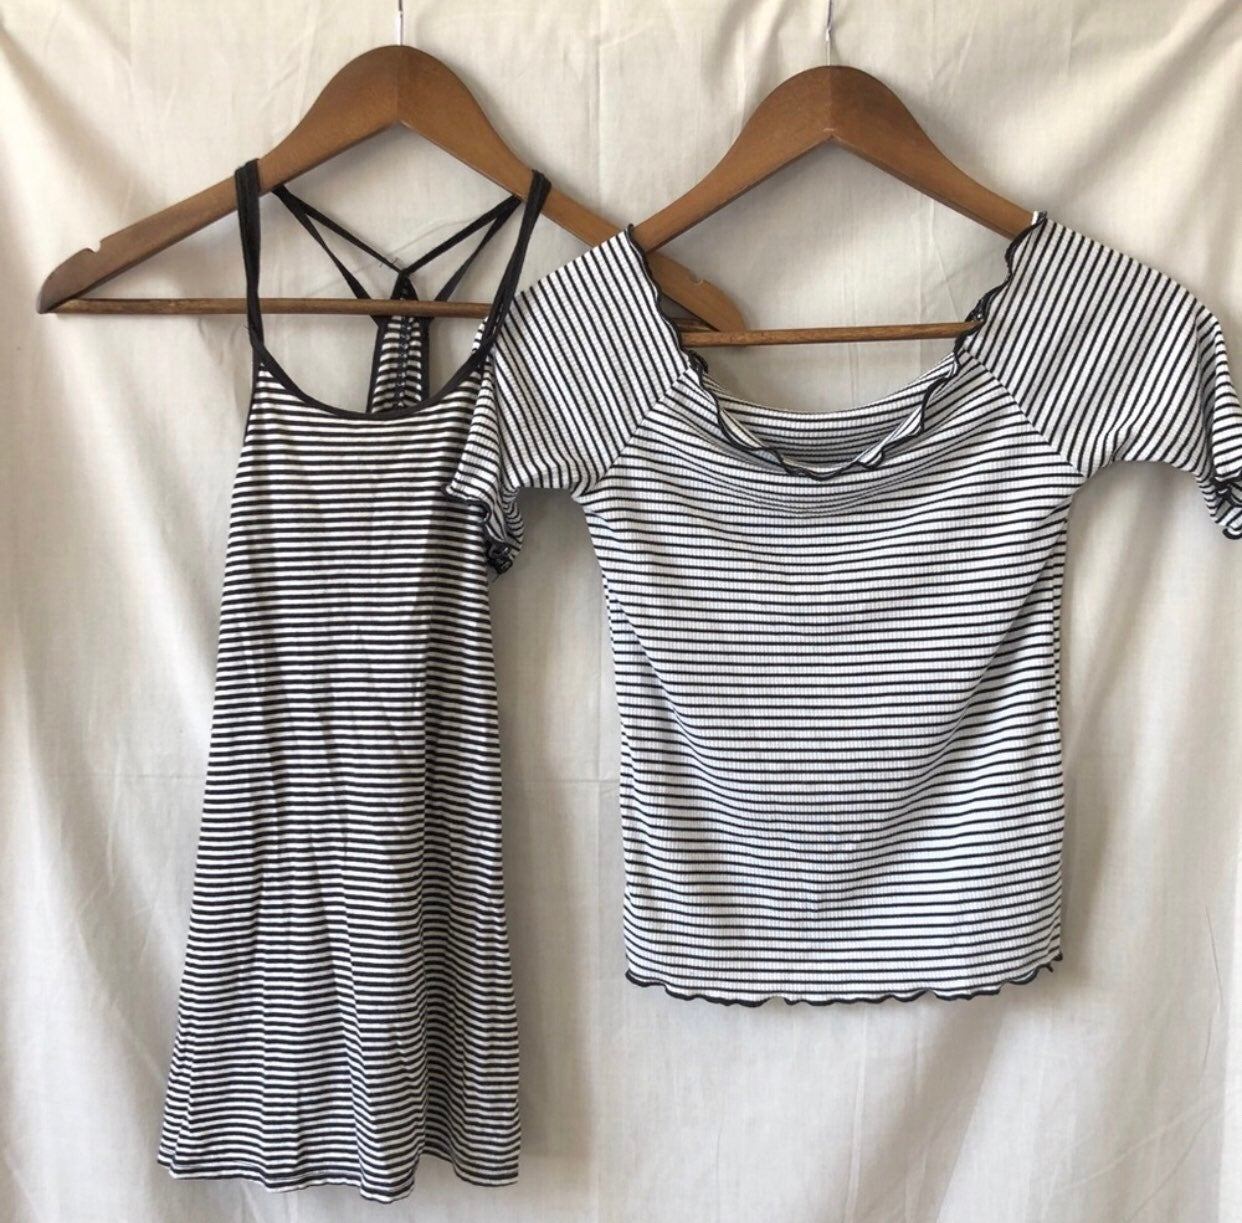 Lot of two size small tops